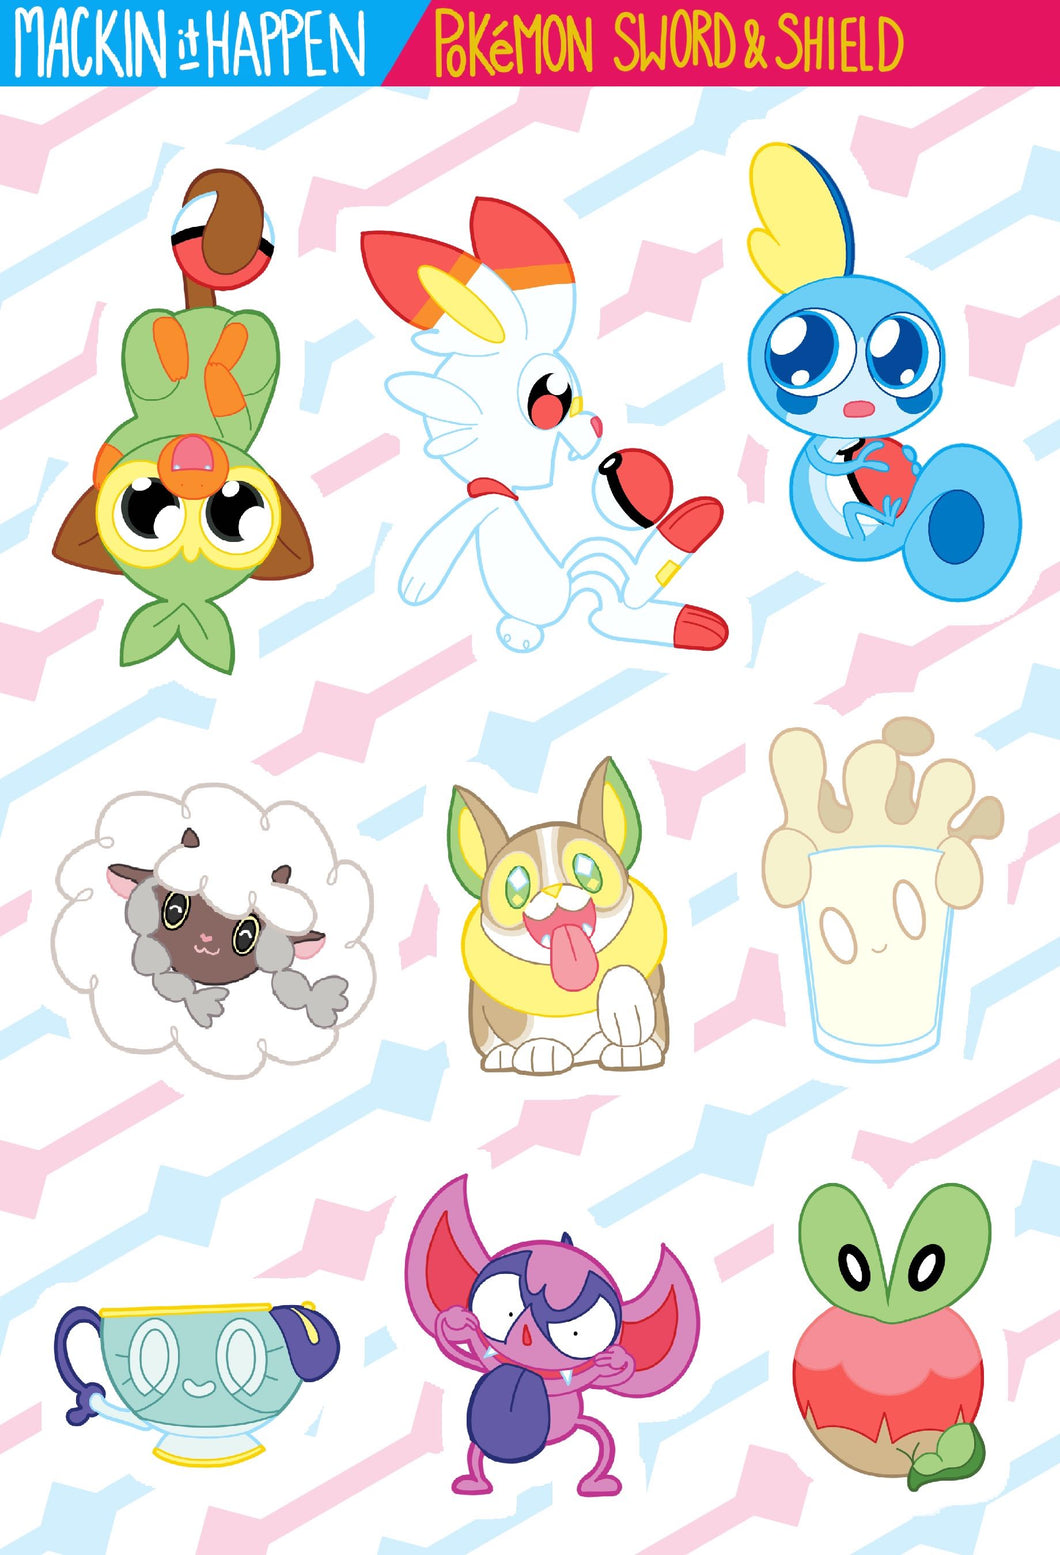 Pokemon Sword & Shield Sticker Sheet